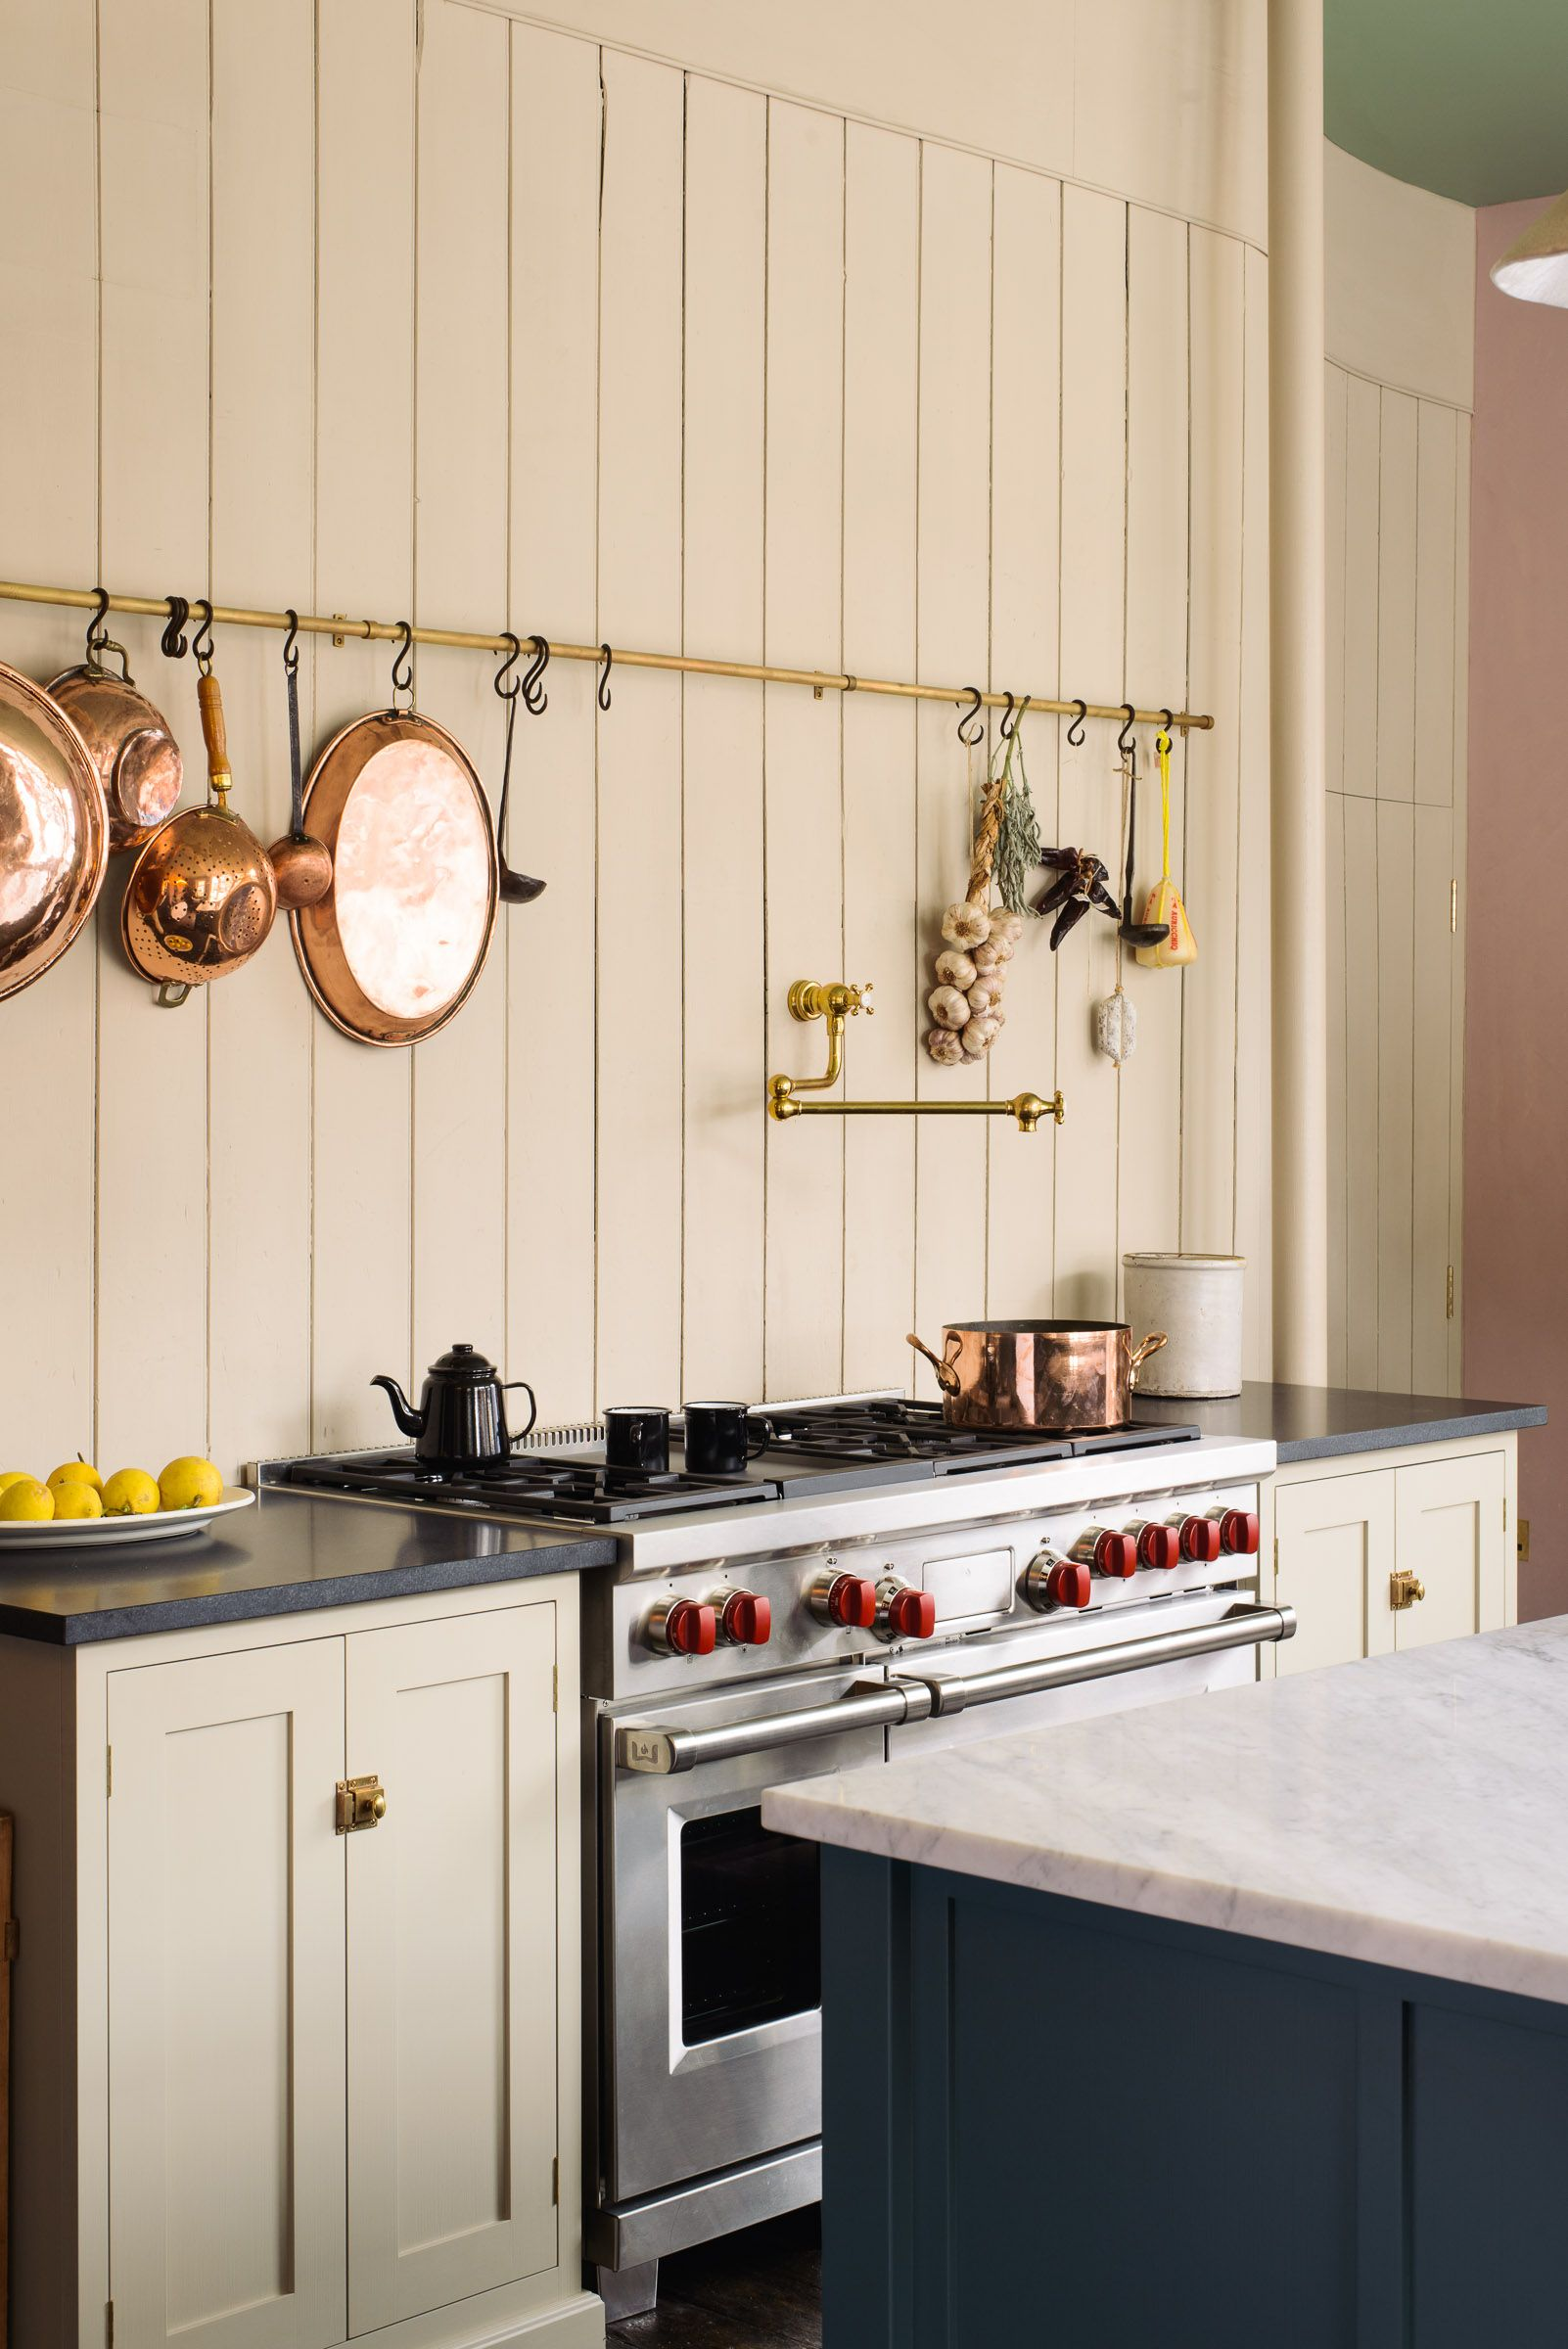 A Br Hanging Rail With Copper Pans